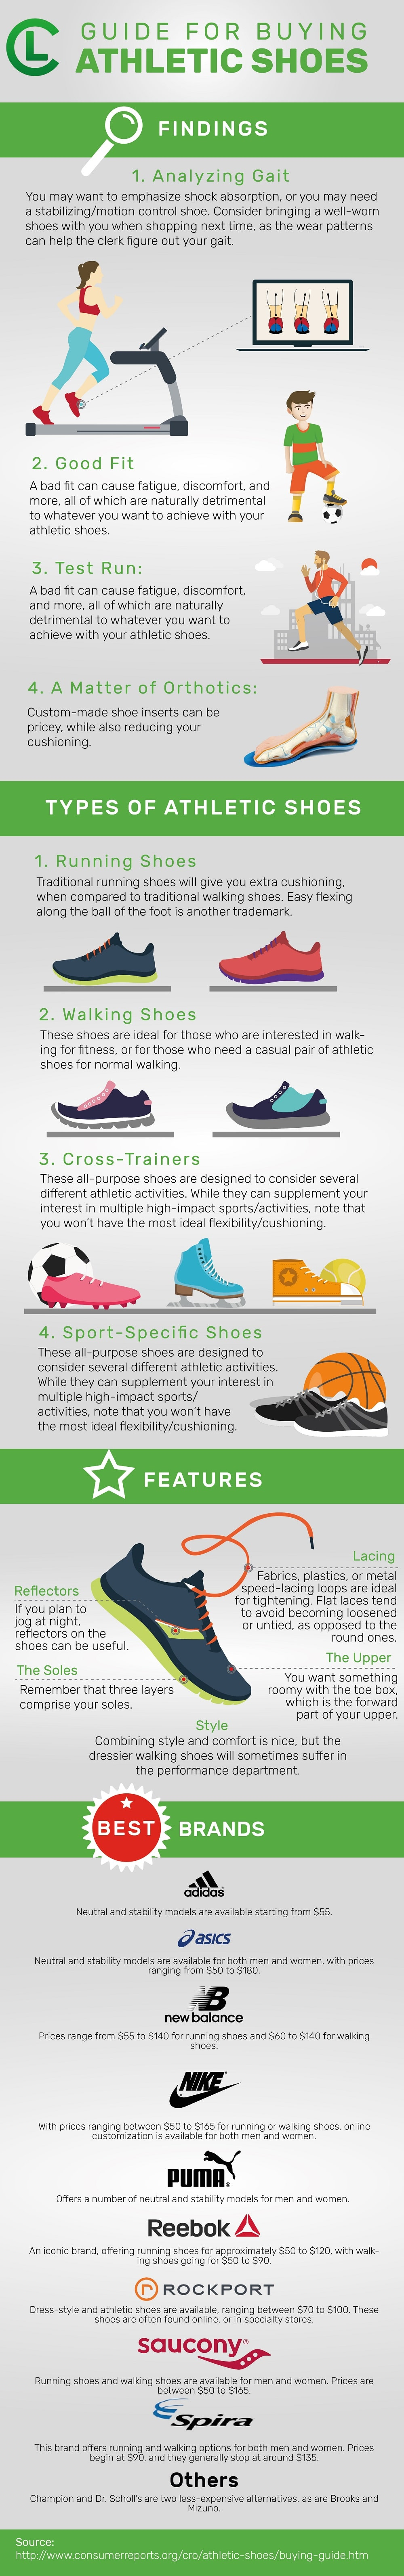 Guide For Buying Athletic Shoes Infographic